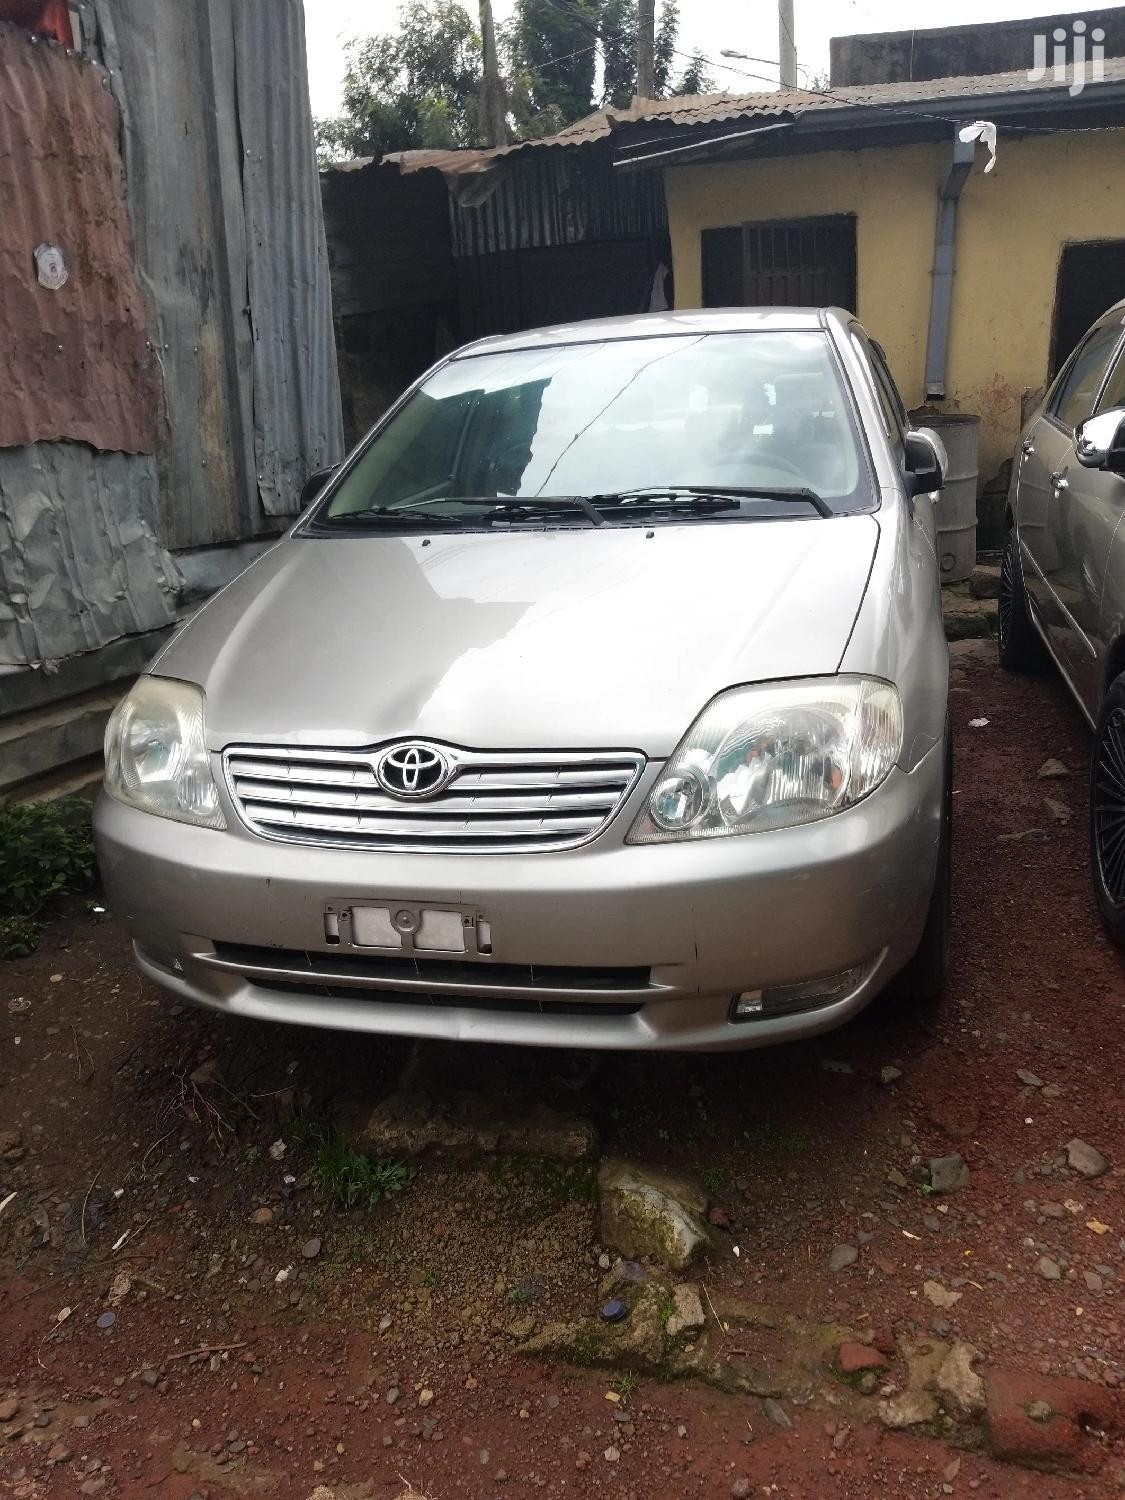 Toyota Corolla 2003 Verso Automatic Gold | Cars for sale in Lideta, Addis Ababa, Ethiopia